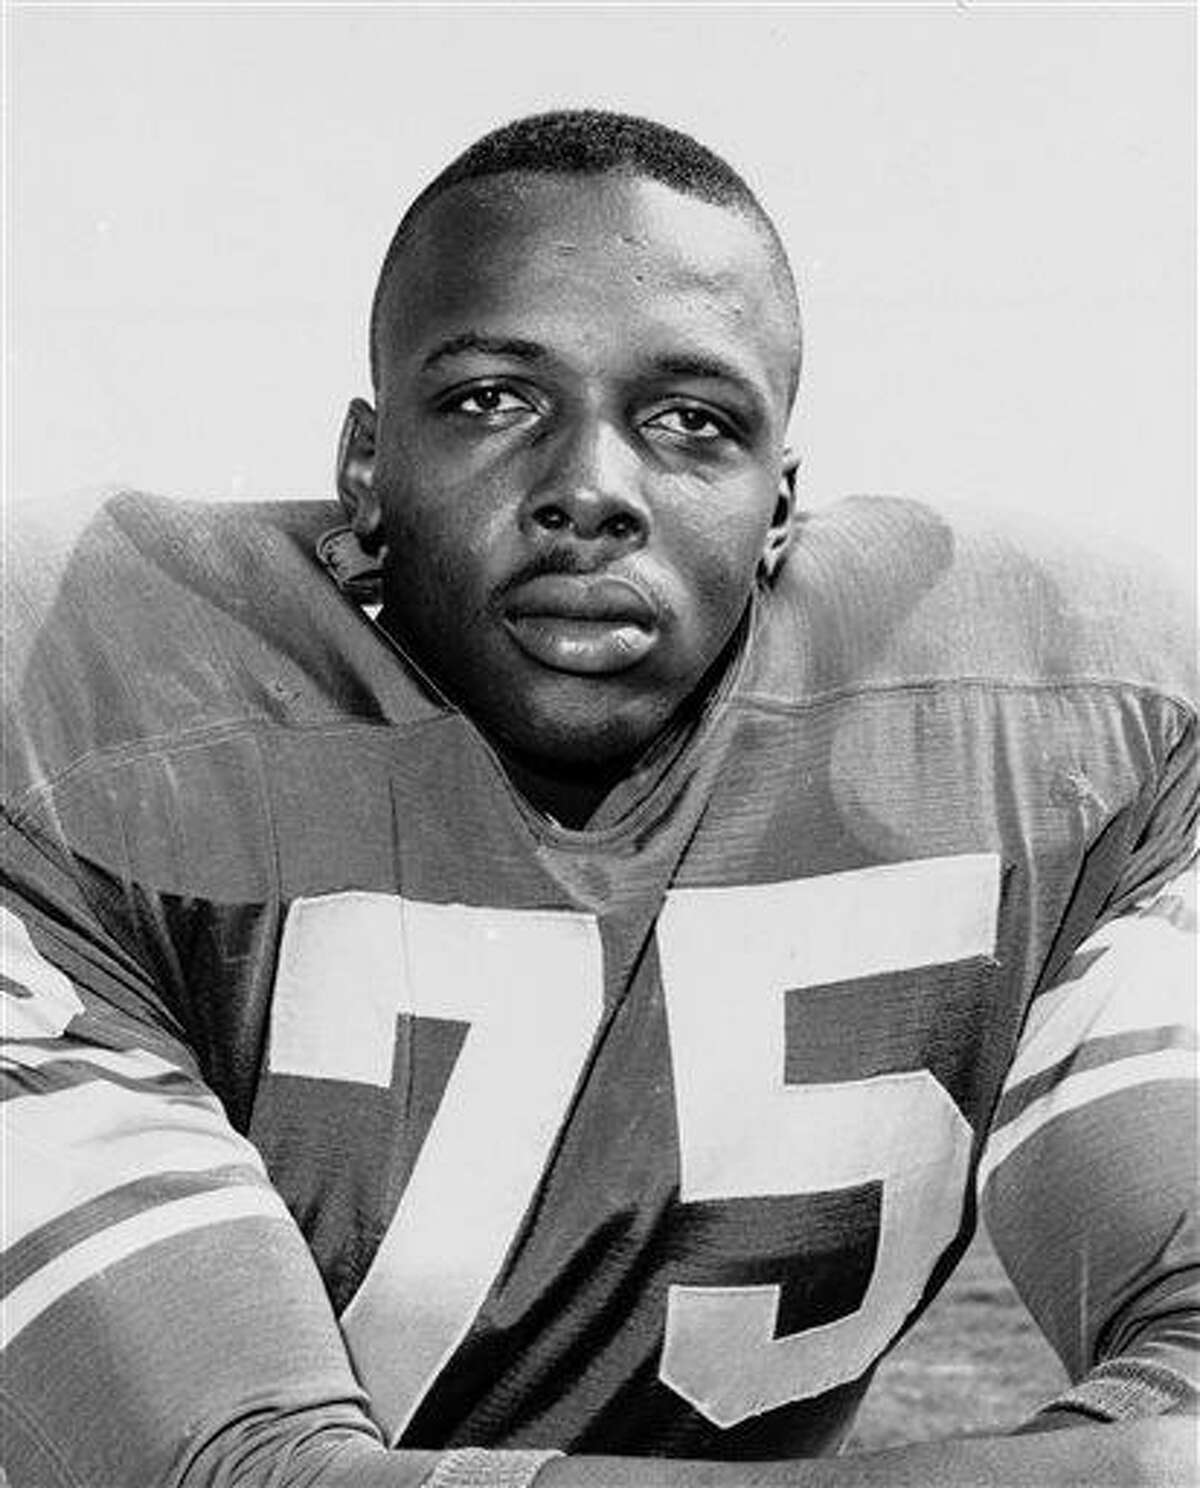 """FILE - This 1963 file photo shows David Deacon Jones. Jones, a Hall of Fame American football defensive end credited with terming the word sack for how he knocked down quarterbacks, has died. He was 74. The Washington Redskins said that Jones died Monday night June 3, 2013 of natural causes at his home in Southern California. Redskins general manager Bruce Allen, whose father, George, coached Jones with the Los Angeles Rams, calls Jones """"one of the greatest players in NFL history. (AP Photo/File)"""